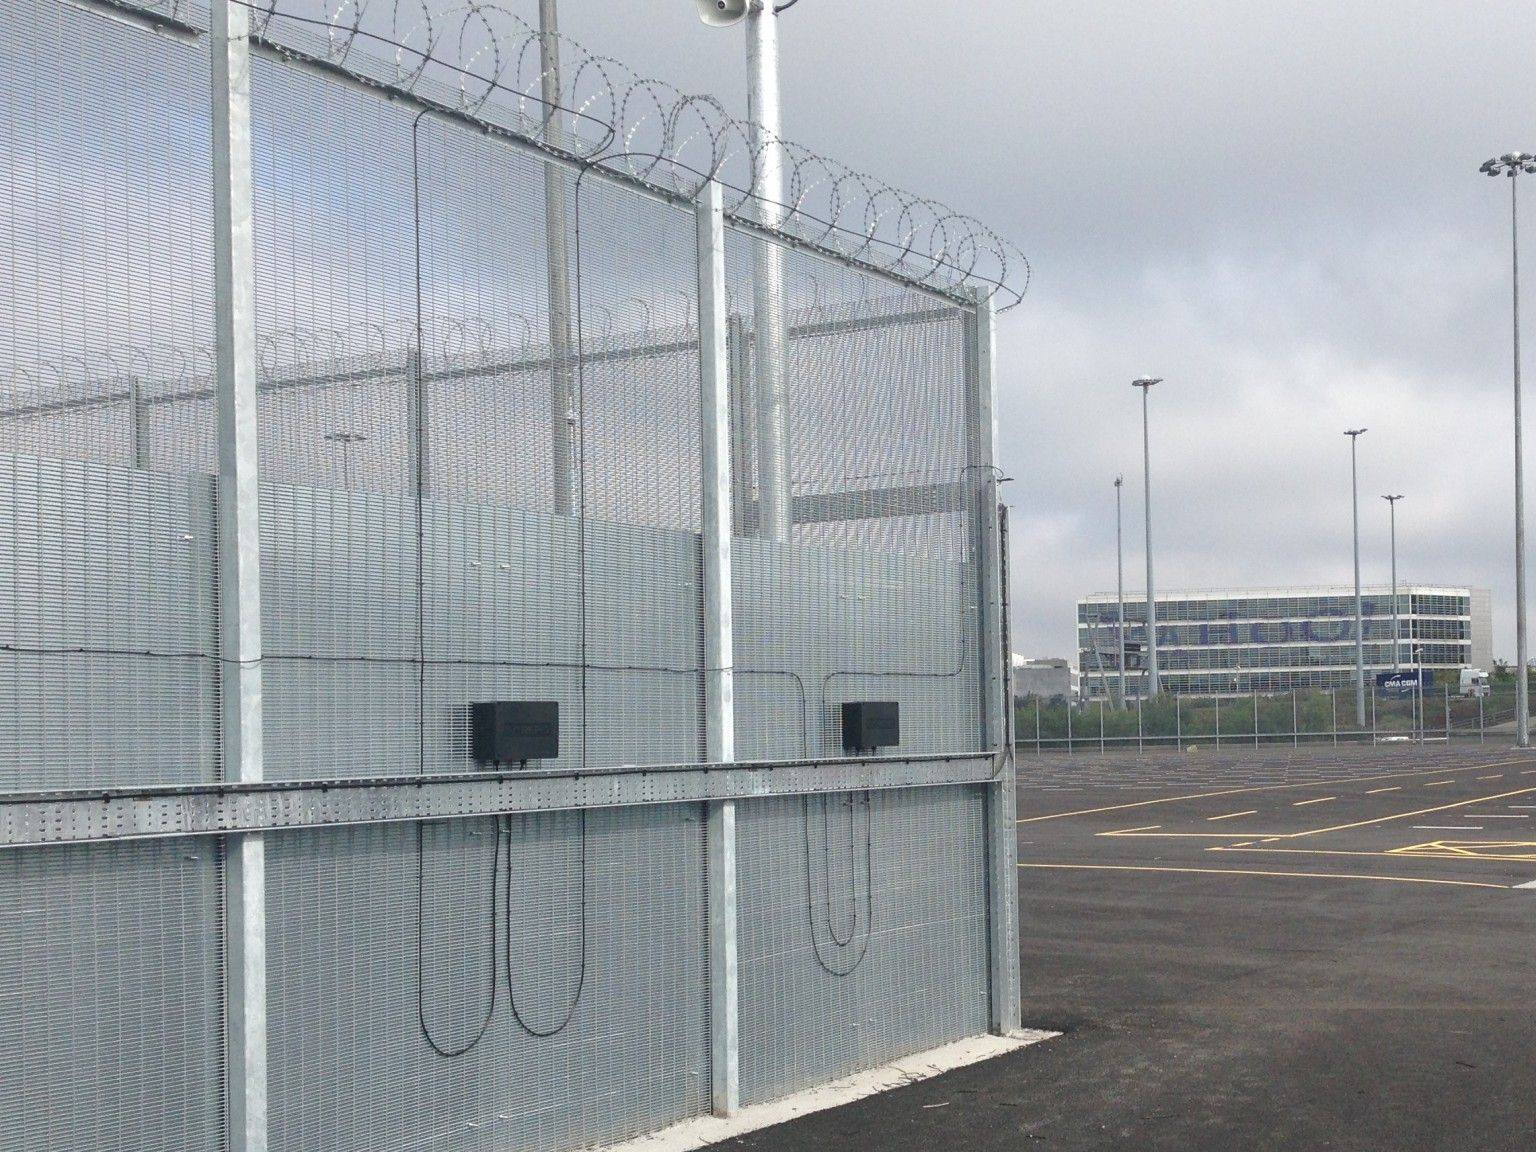 358 Mesh with integrated Electronic Perimeter Security Protection